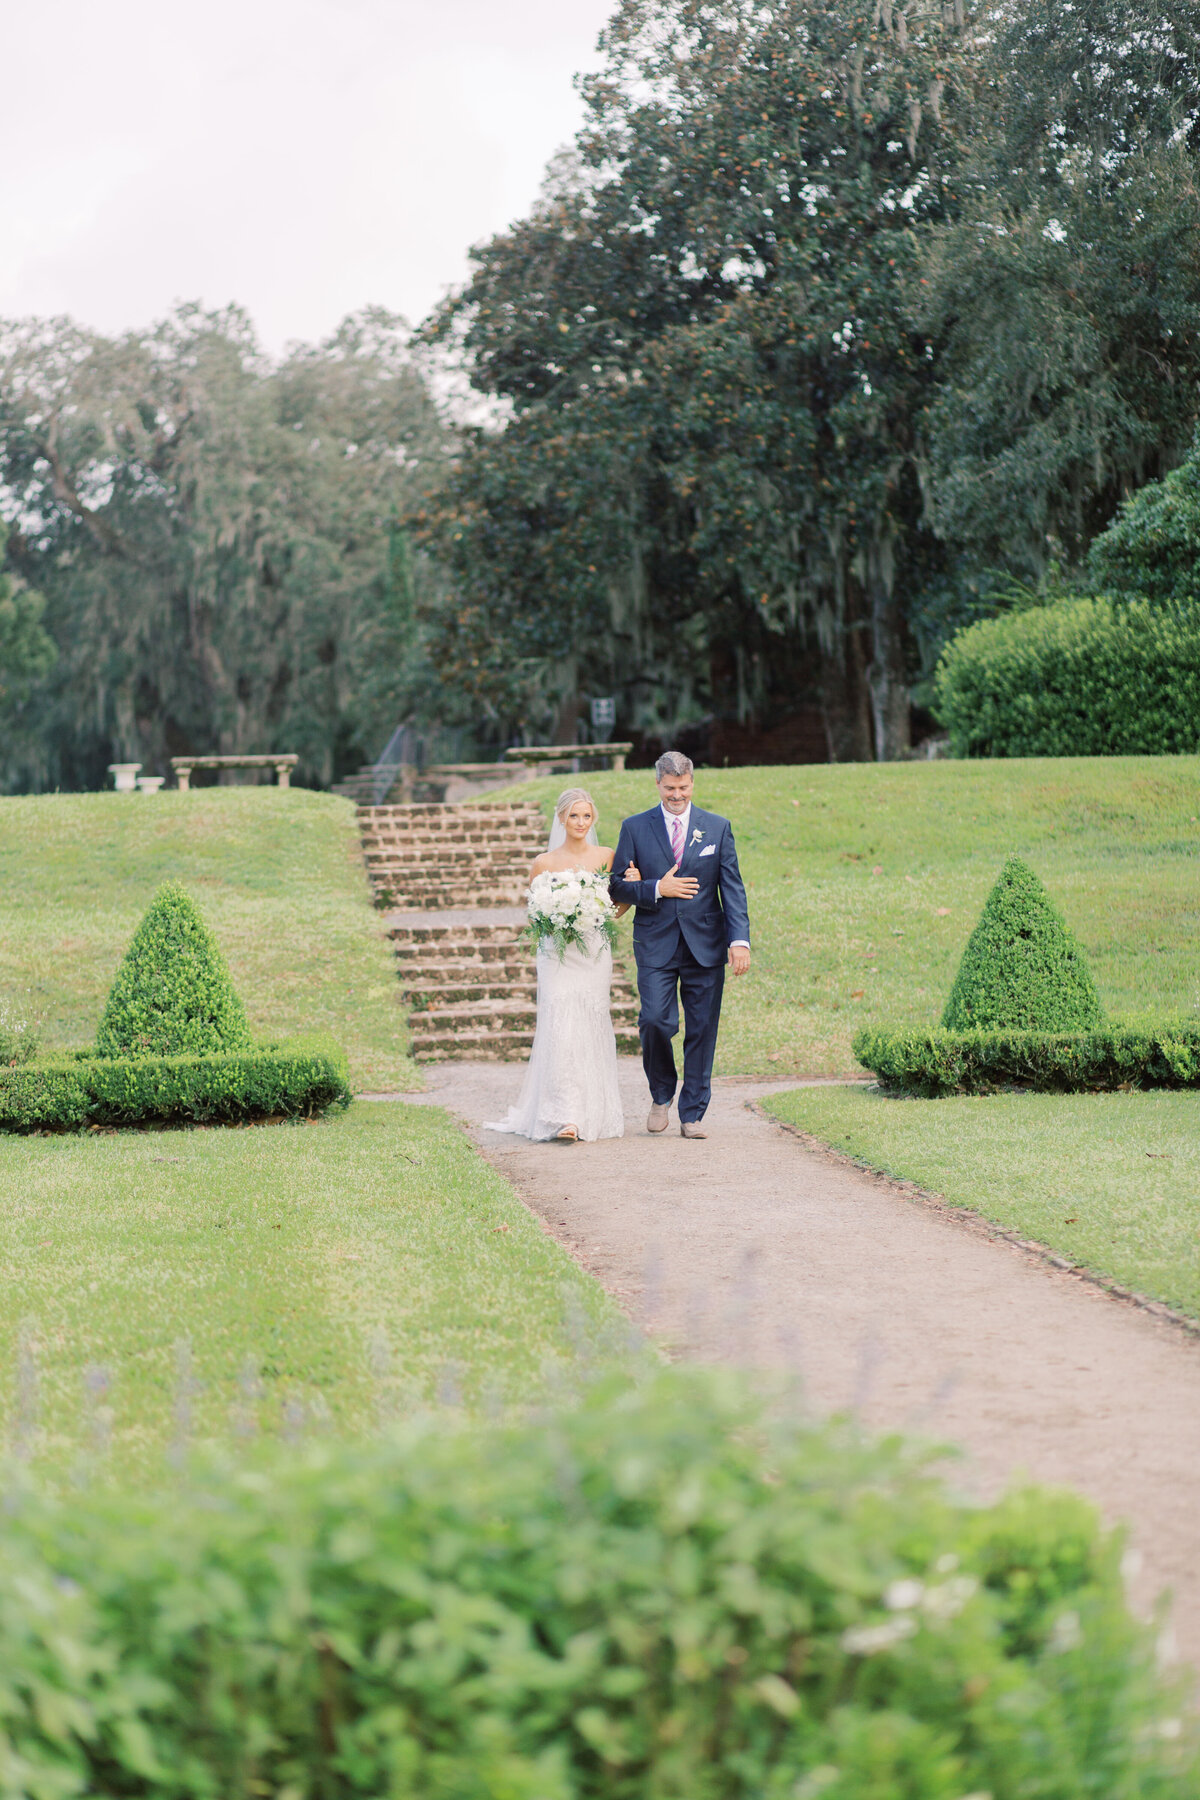 Melton_Wedding__Middleton_Place_Plantation_Charleston_South_Carolina_Jacksonville_Florida_Devon_Donnahoo_Photography__0572